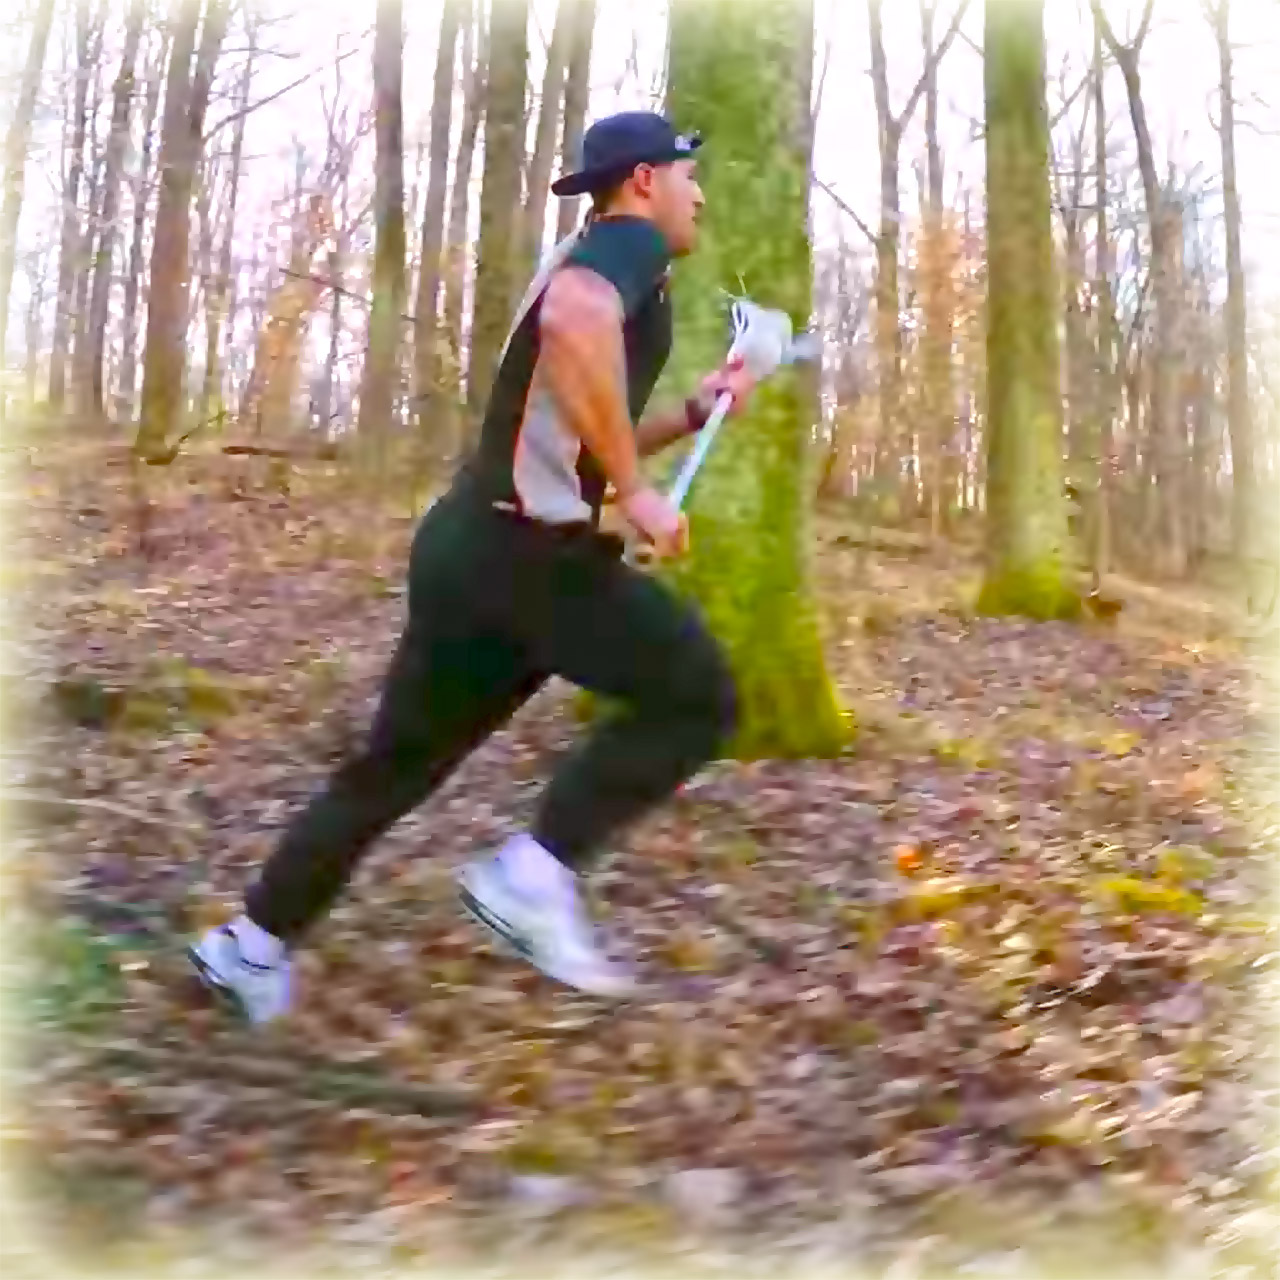 New York Lizards lacrosse star Paul Rabil runs in the woods with GoPro